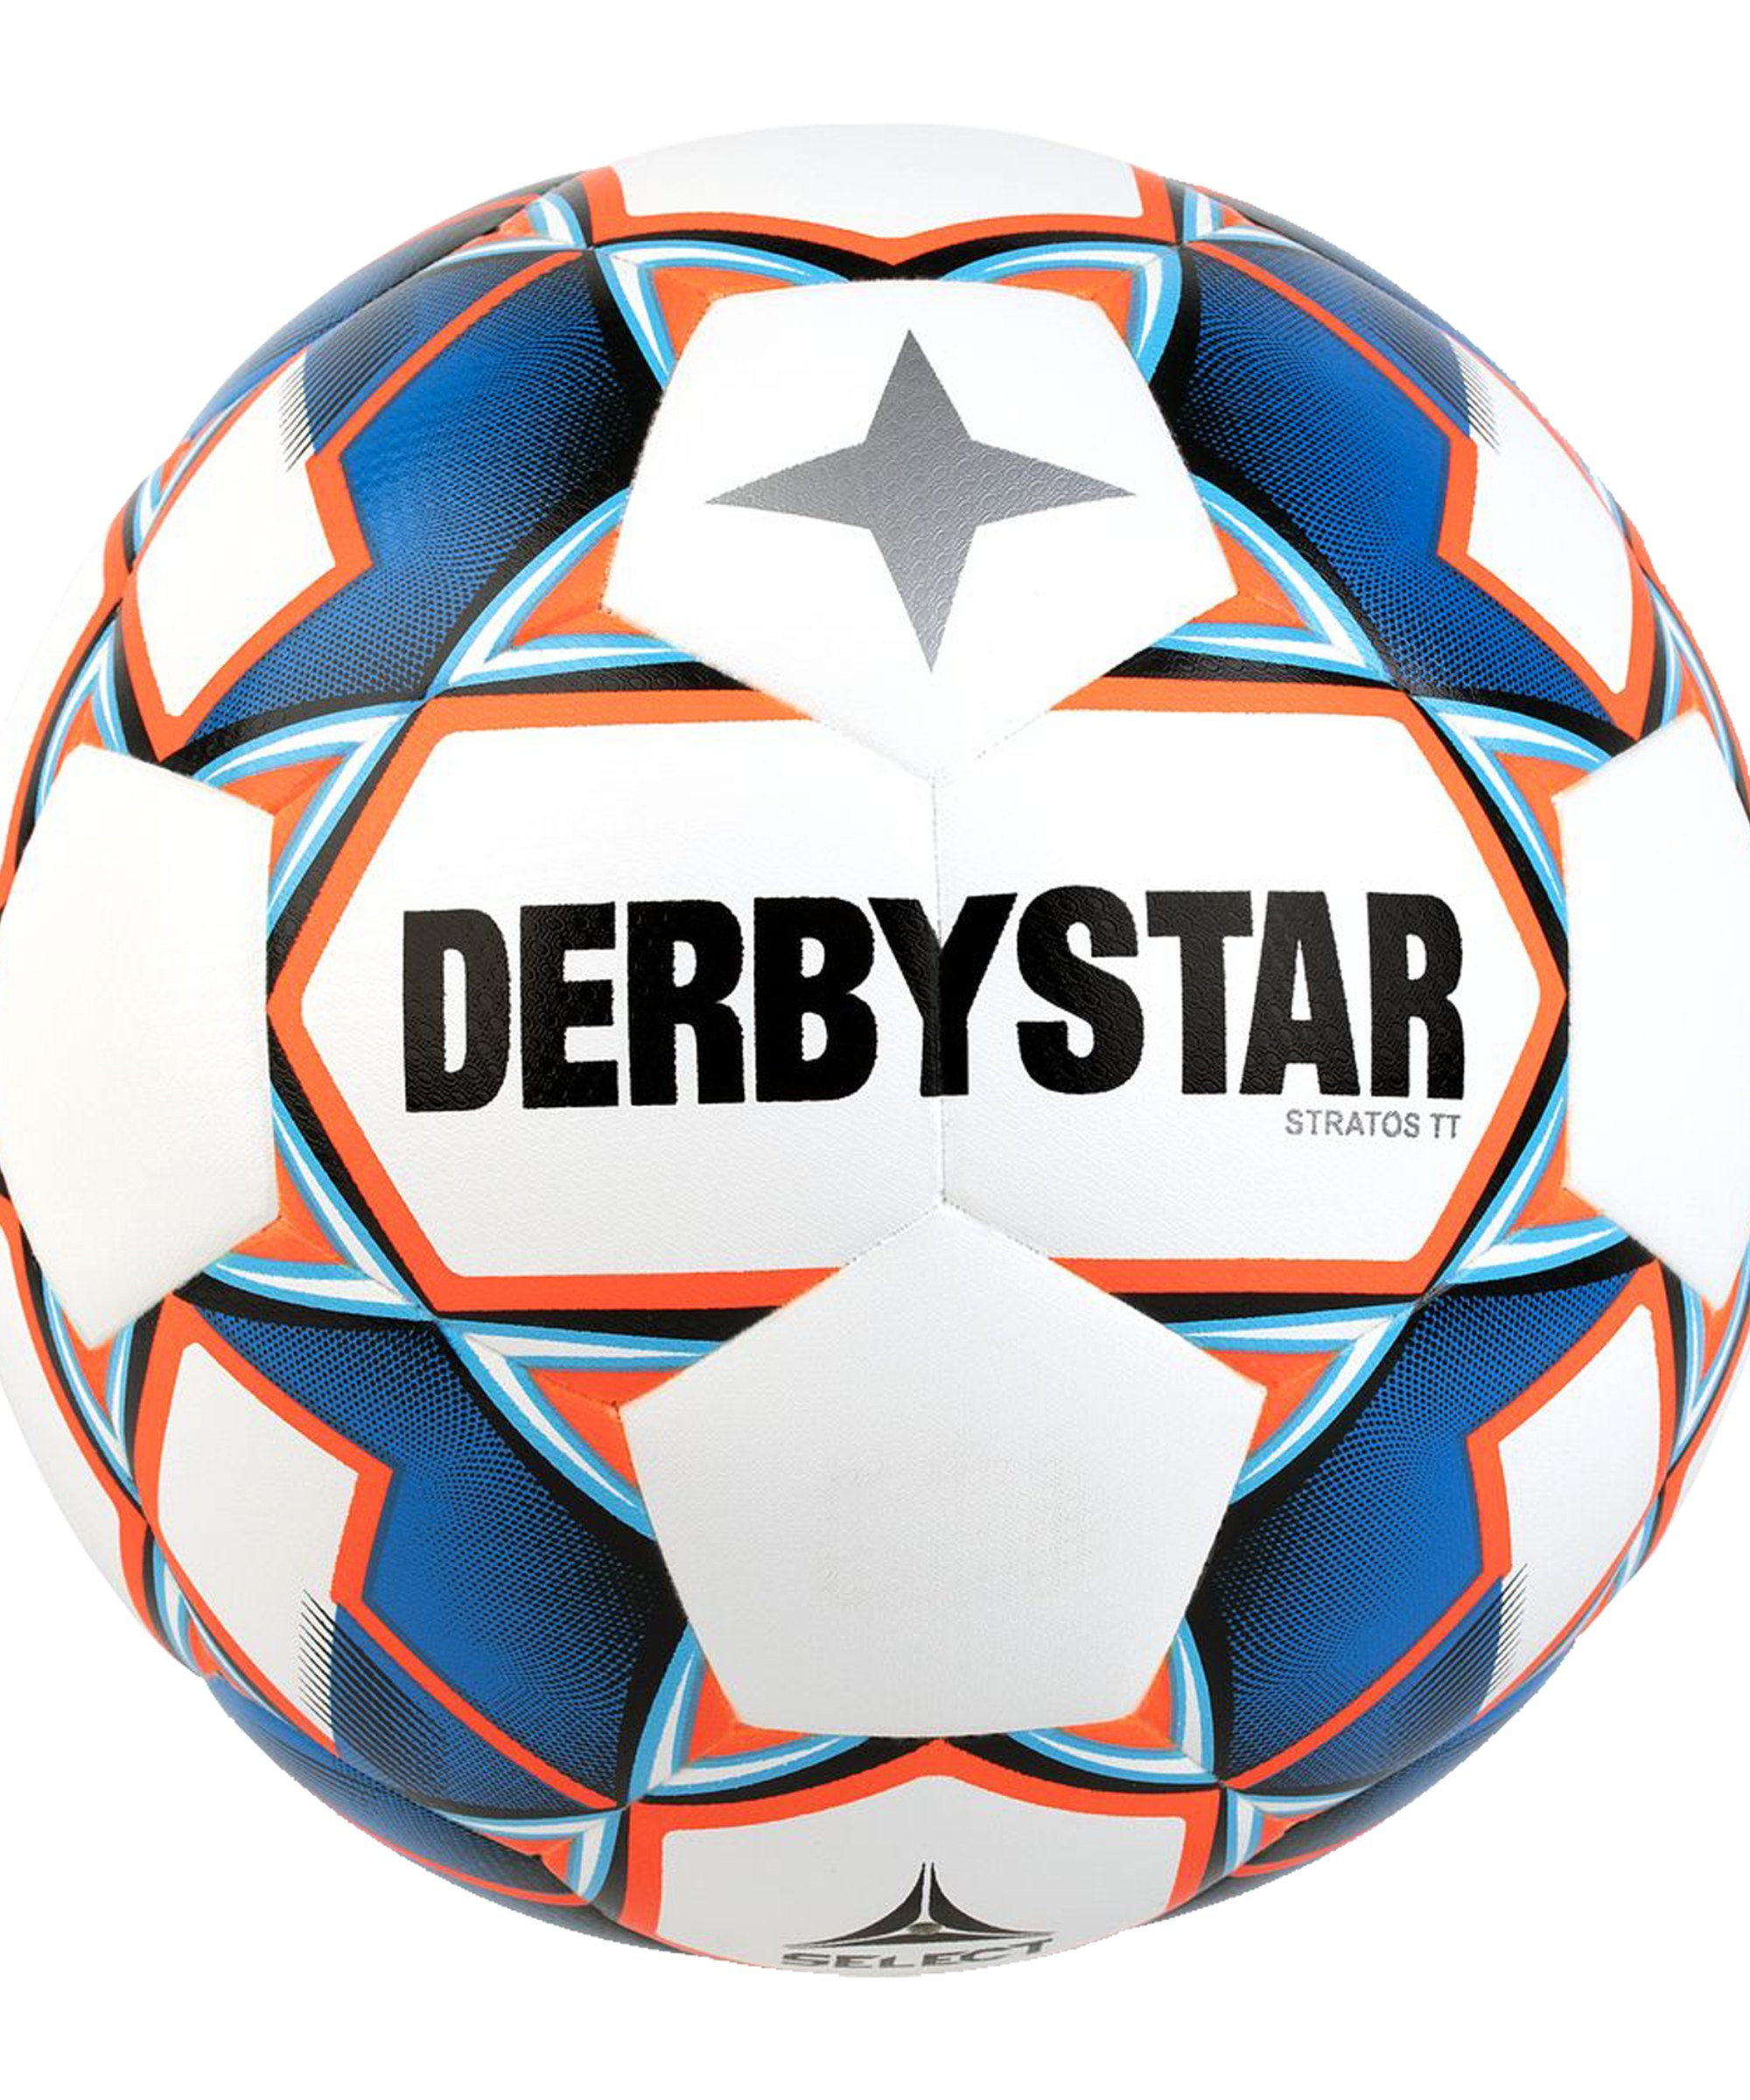 Derbystar Stratos TT v20 Trainingsball F167 - weiss